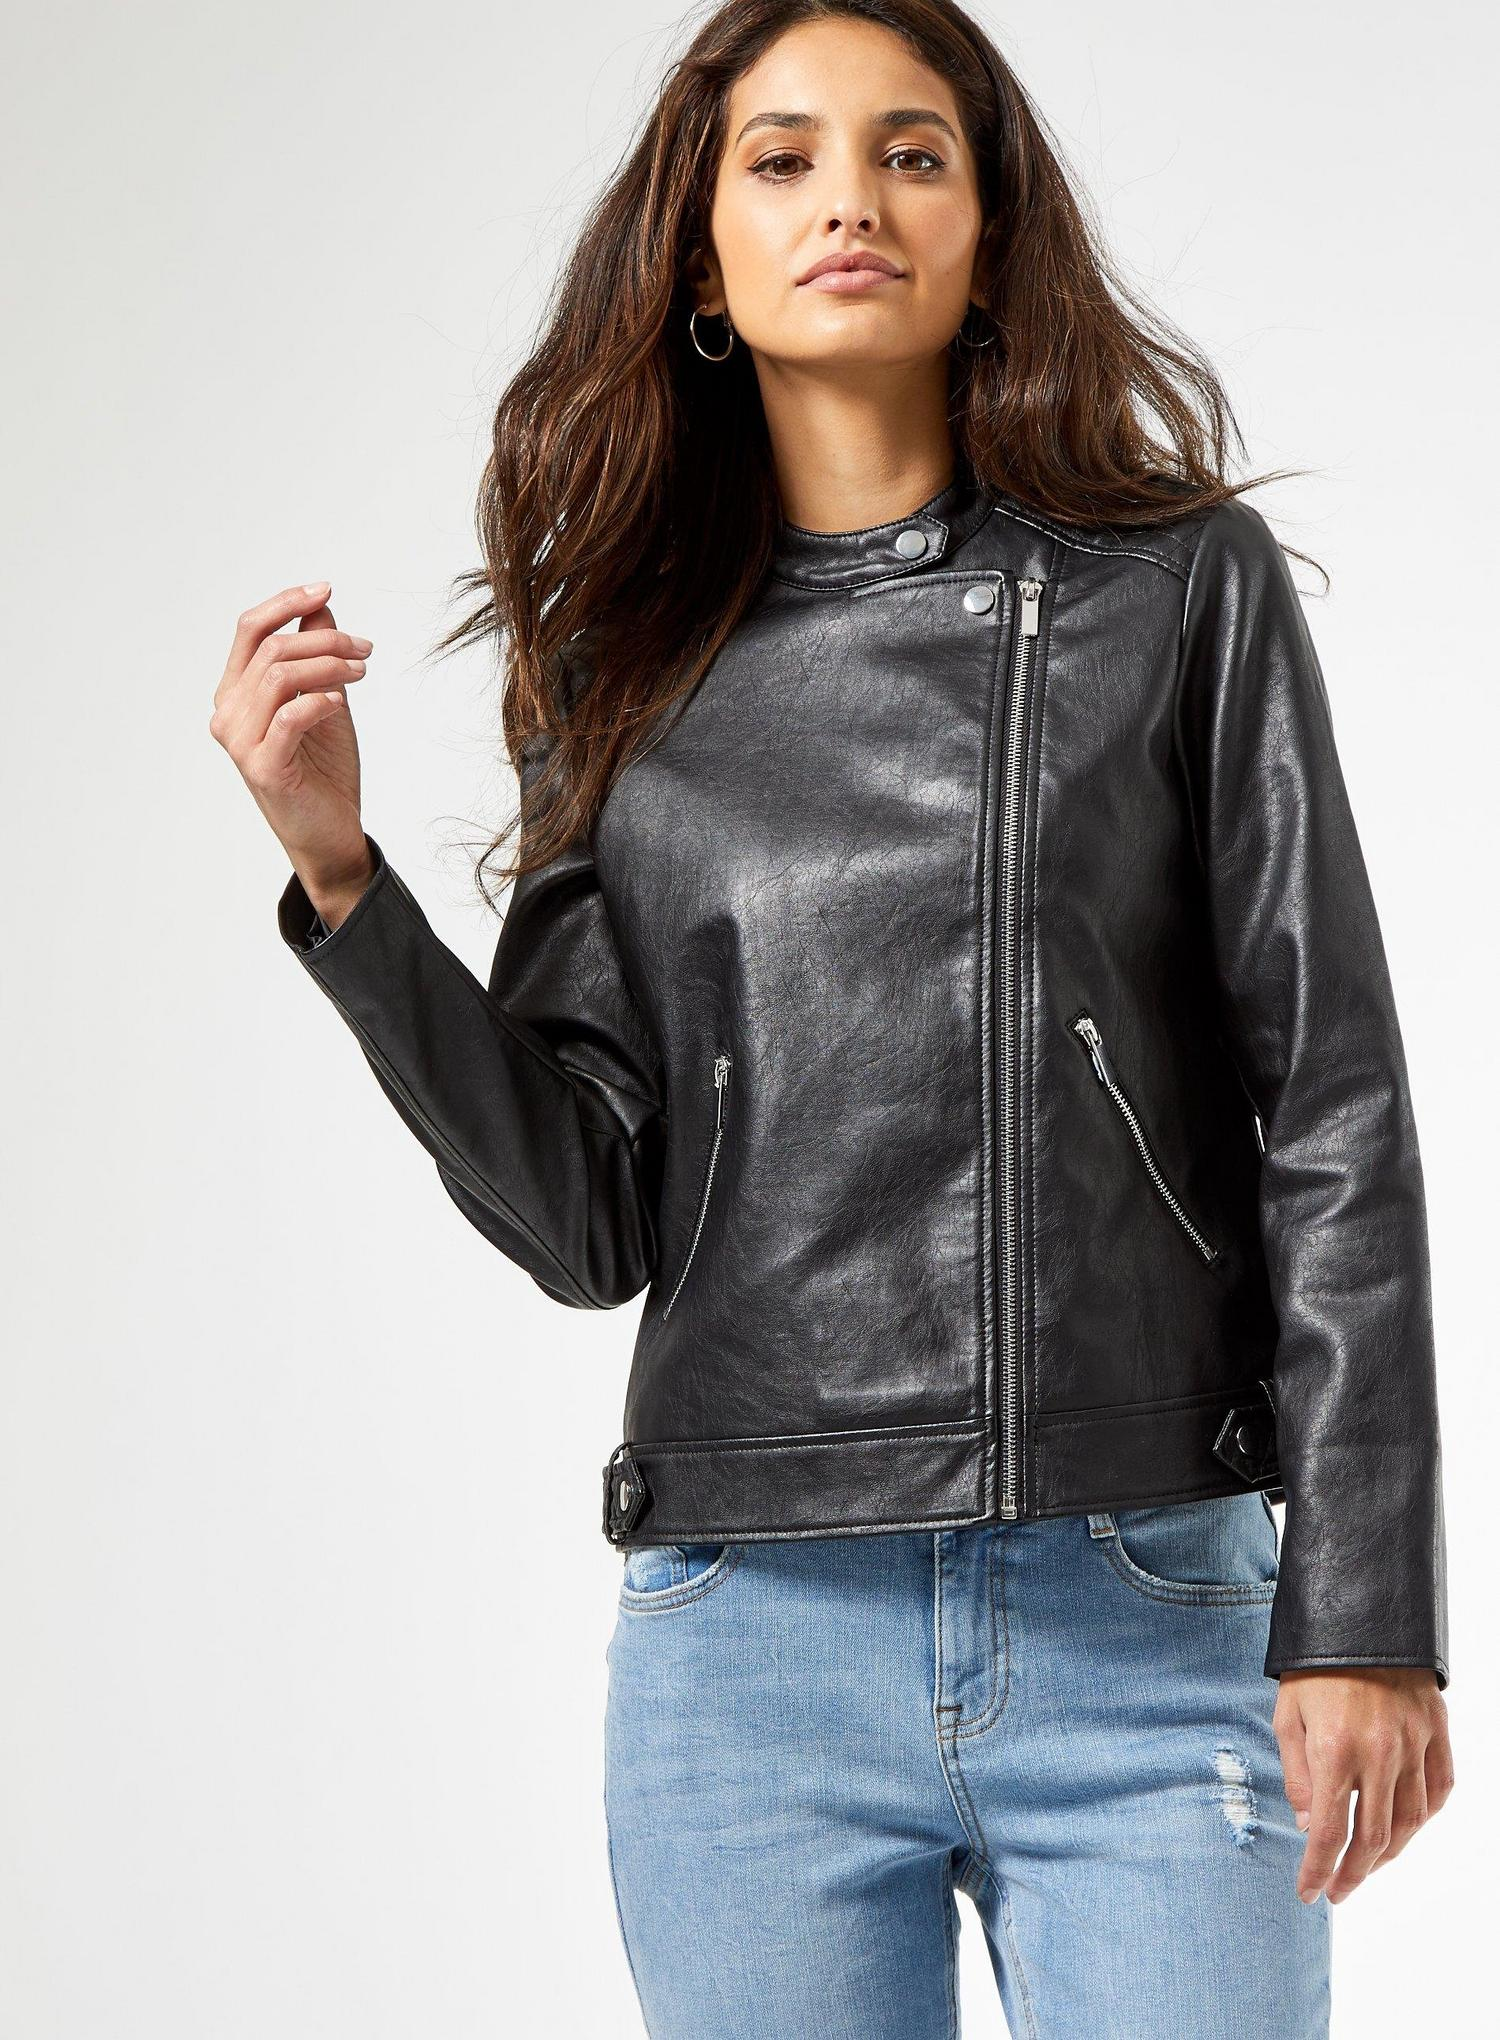 105 Black Faux Leather Collarless Jacket image number 3